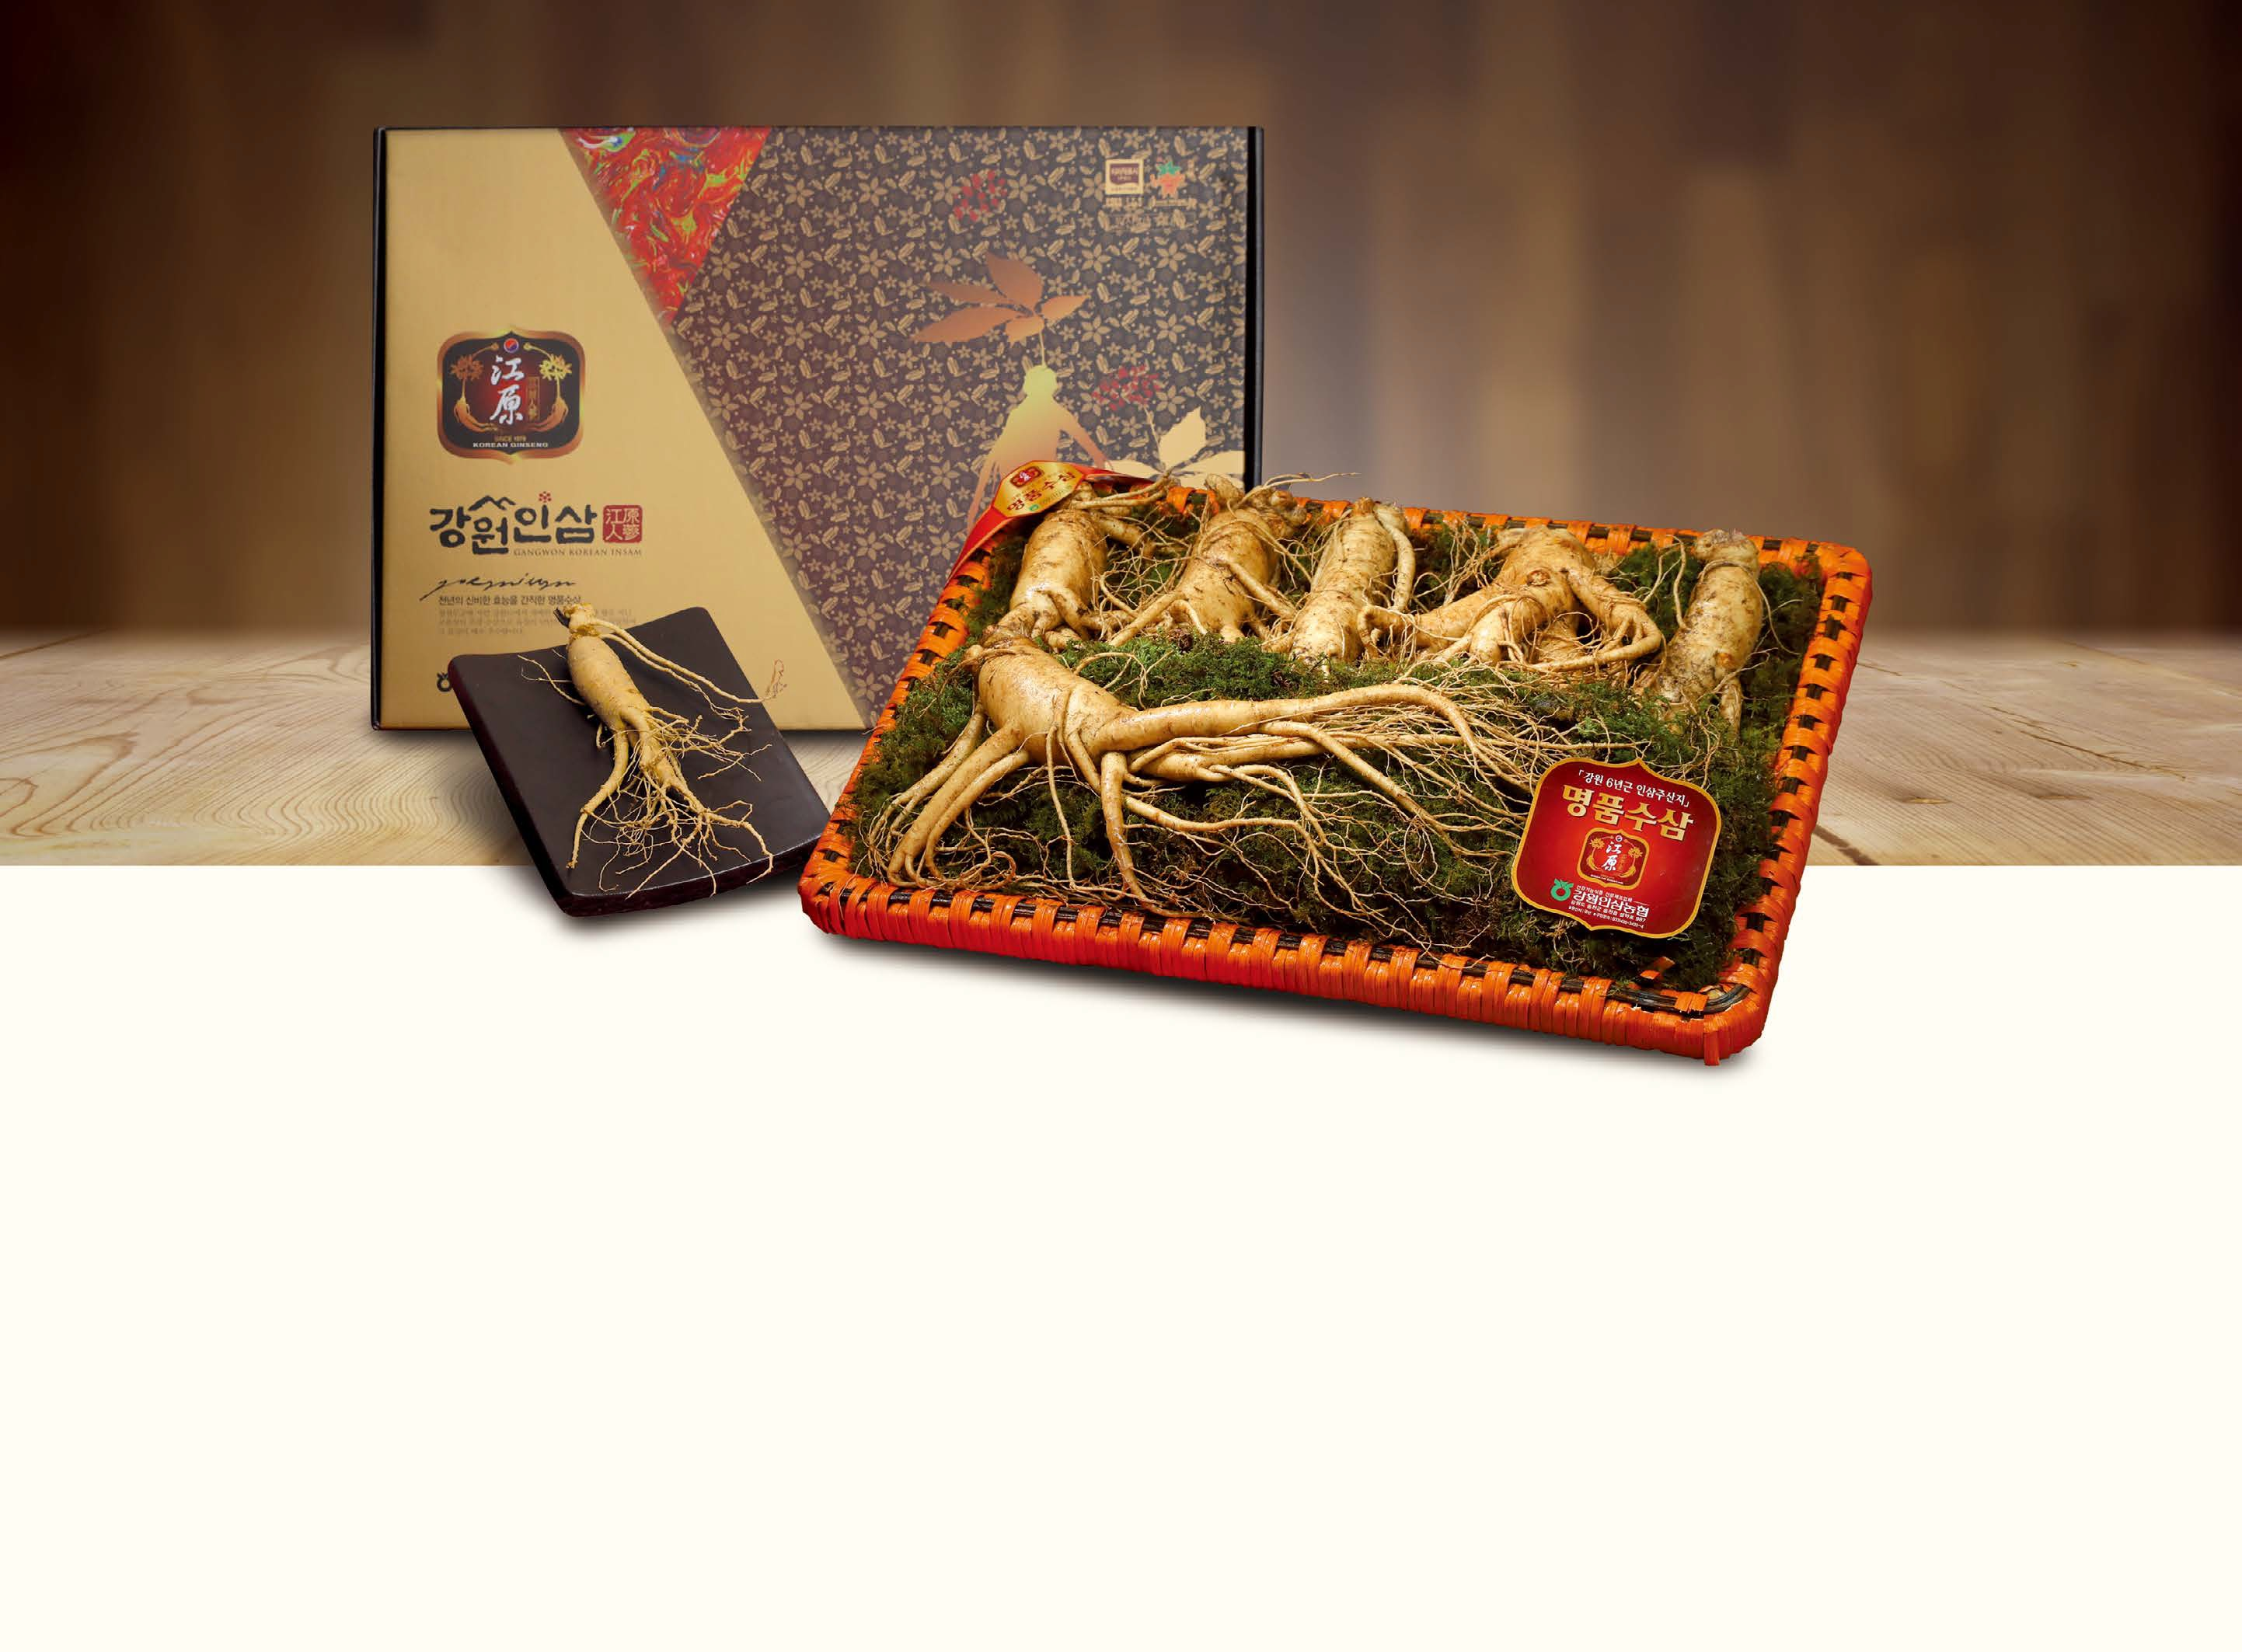 High quality ginseng from Gangwon-do in Korea